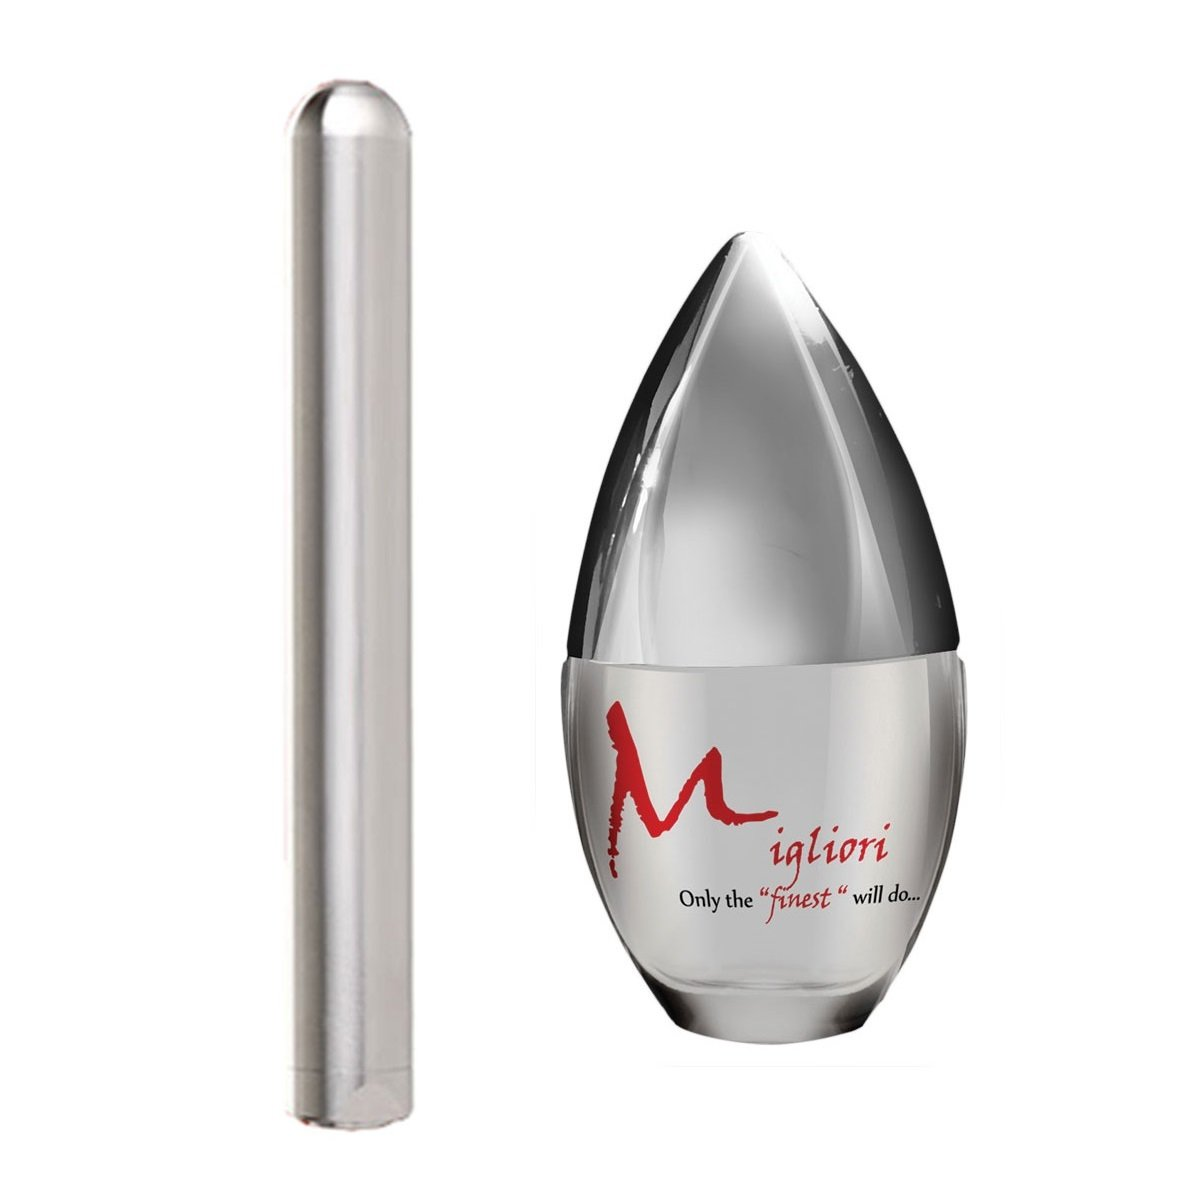 Aneros Muze paired with Migliori high end silicone lubricant (30 ml) by Aneros, Migliori